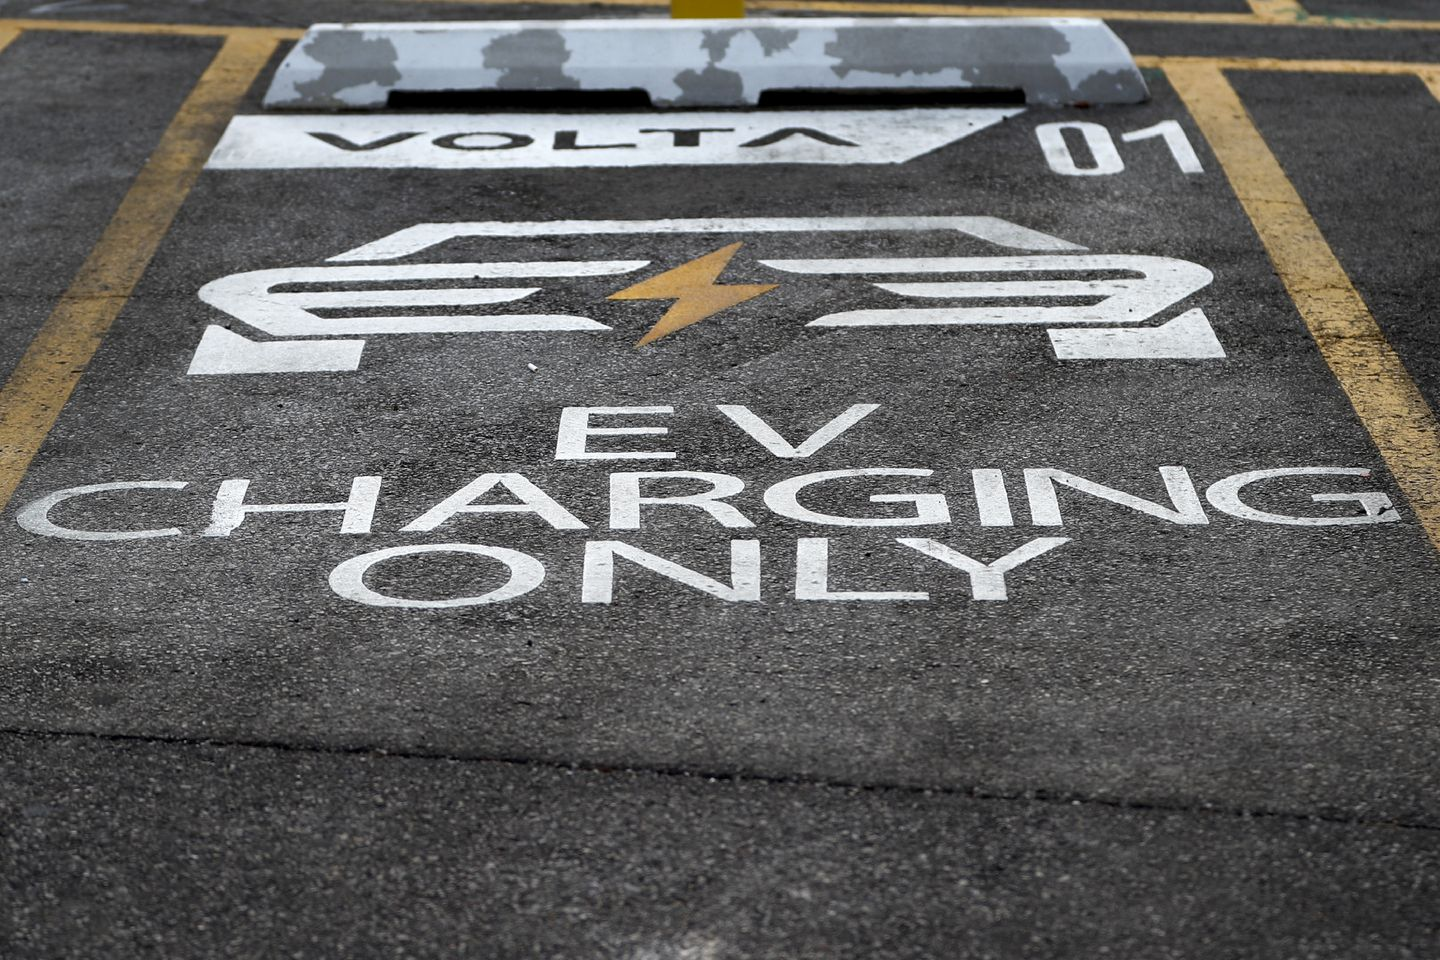 A designated parking space for electric vehicles at a Chicago area grocery store. Massachusetts will need to build a dense network of charging stations for residents to adopt electric vehicles.